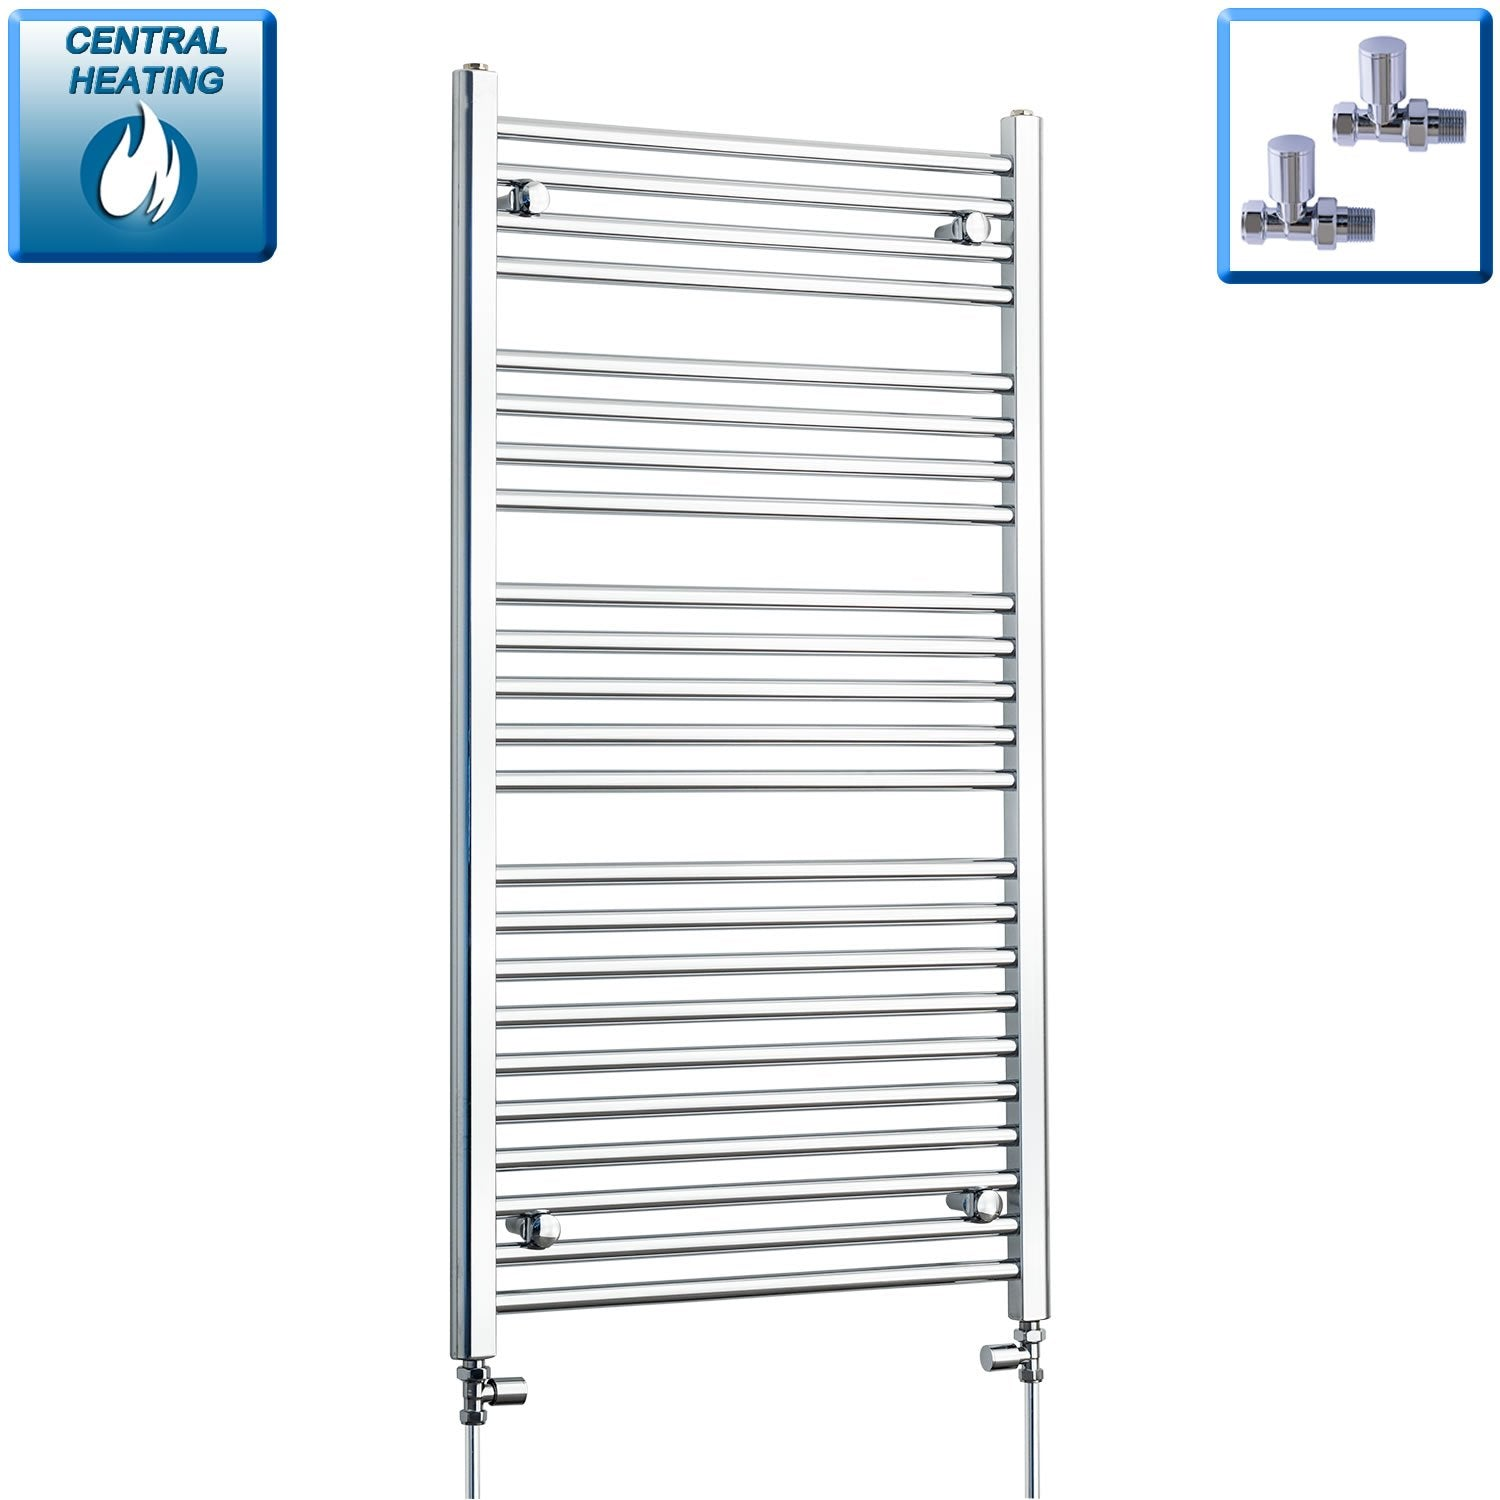 650mm Wide 1200mm High Flat Chrome Heated Towel Rail Radiator HTR,With Straight Valve